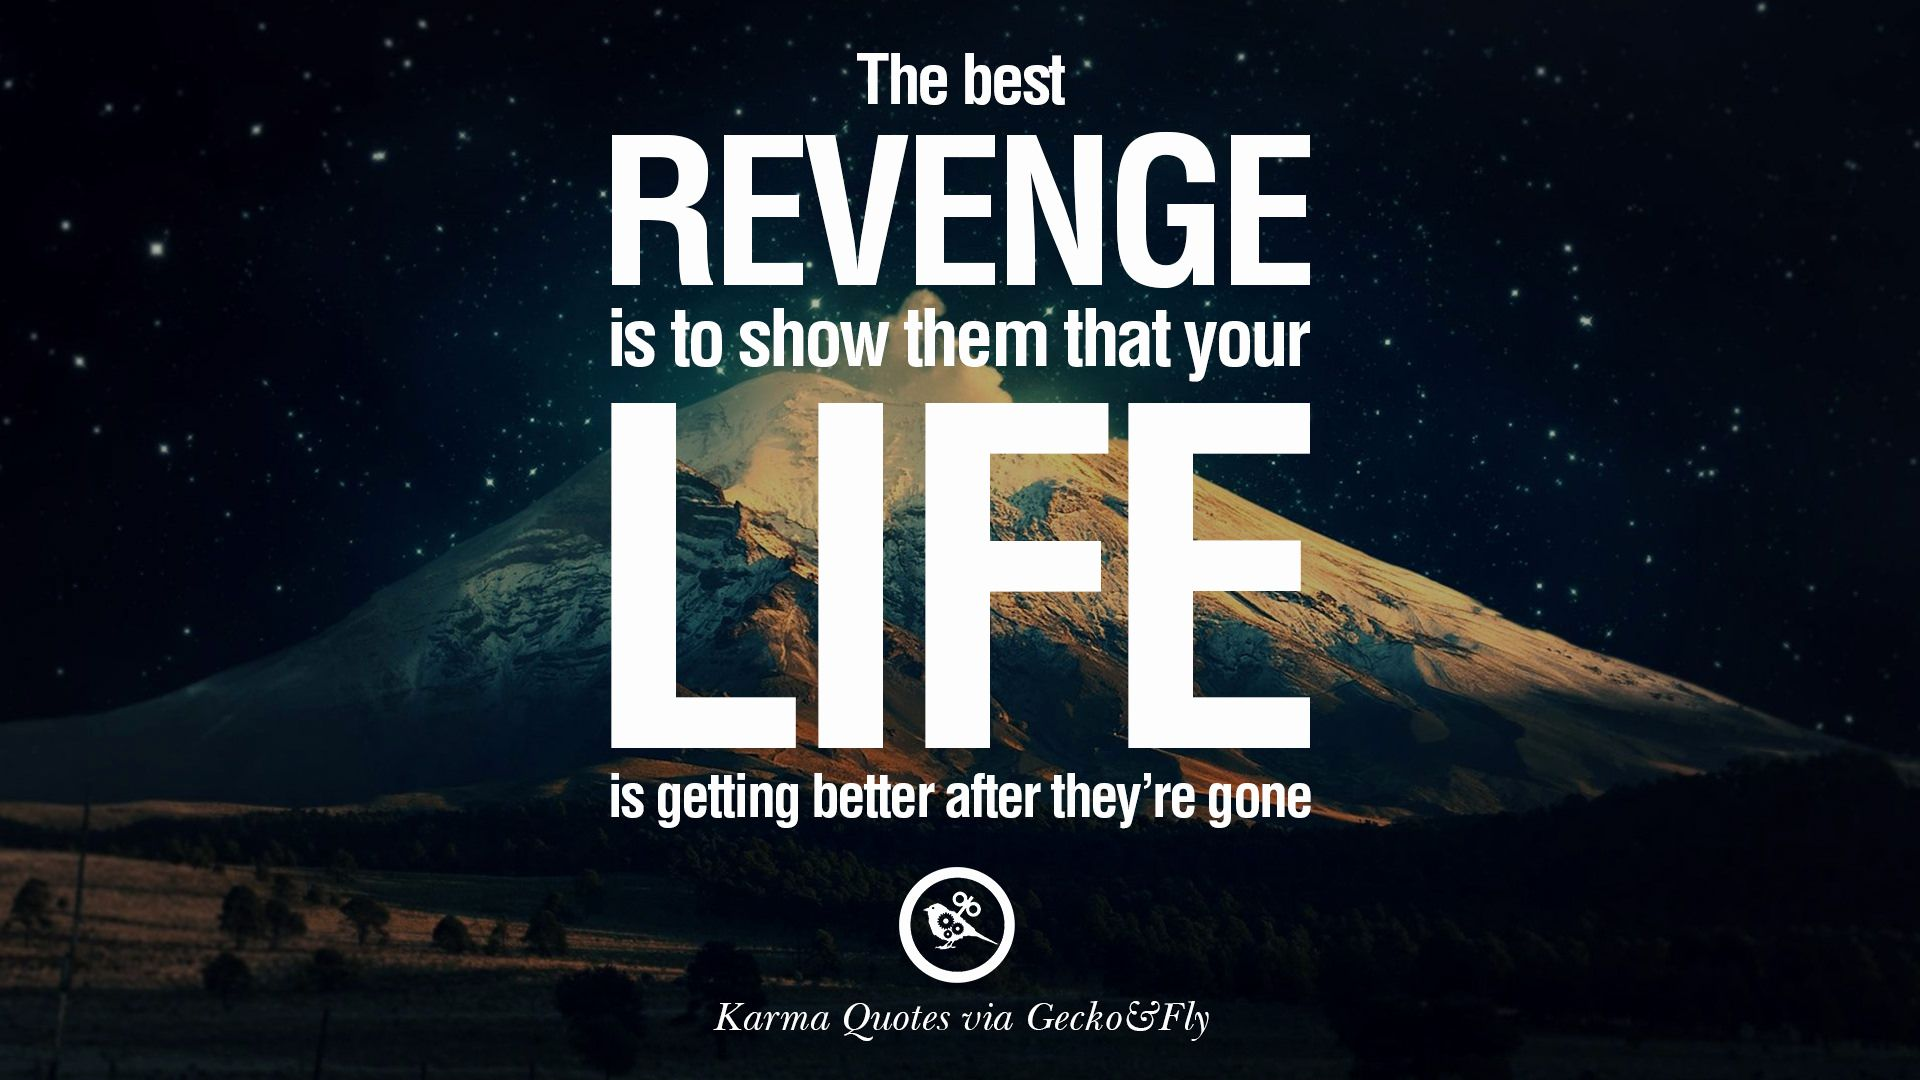 Related Image Karma Quotes Revenge Quotes Relationship Quotes